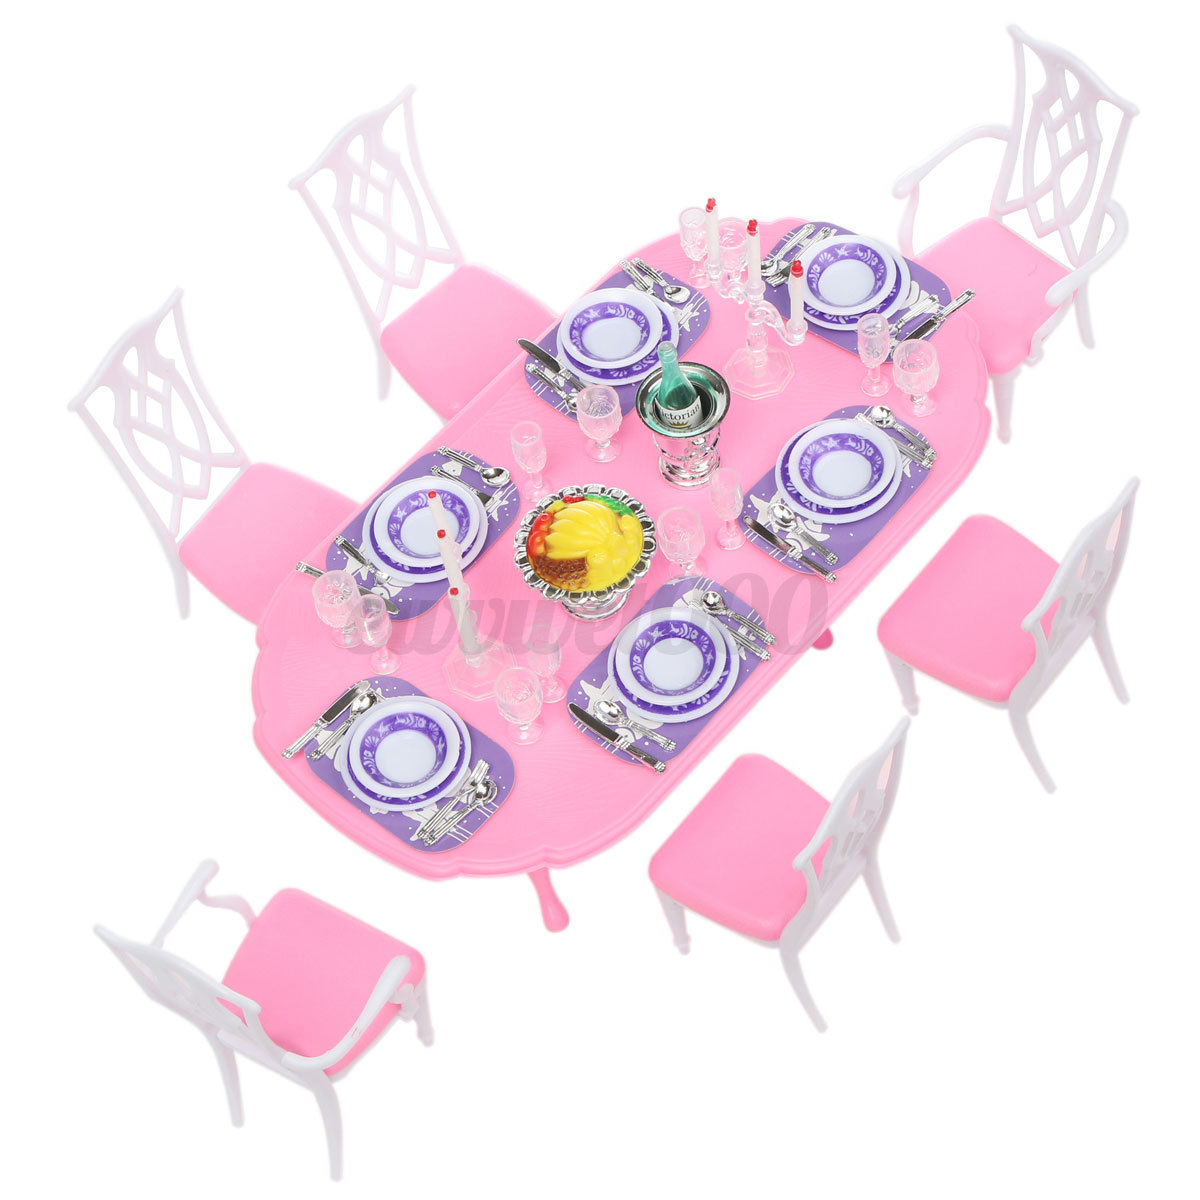 Barbie Room: Chair Table Bed Living Room Dollhouse Miniature Furniture